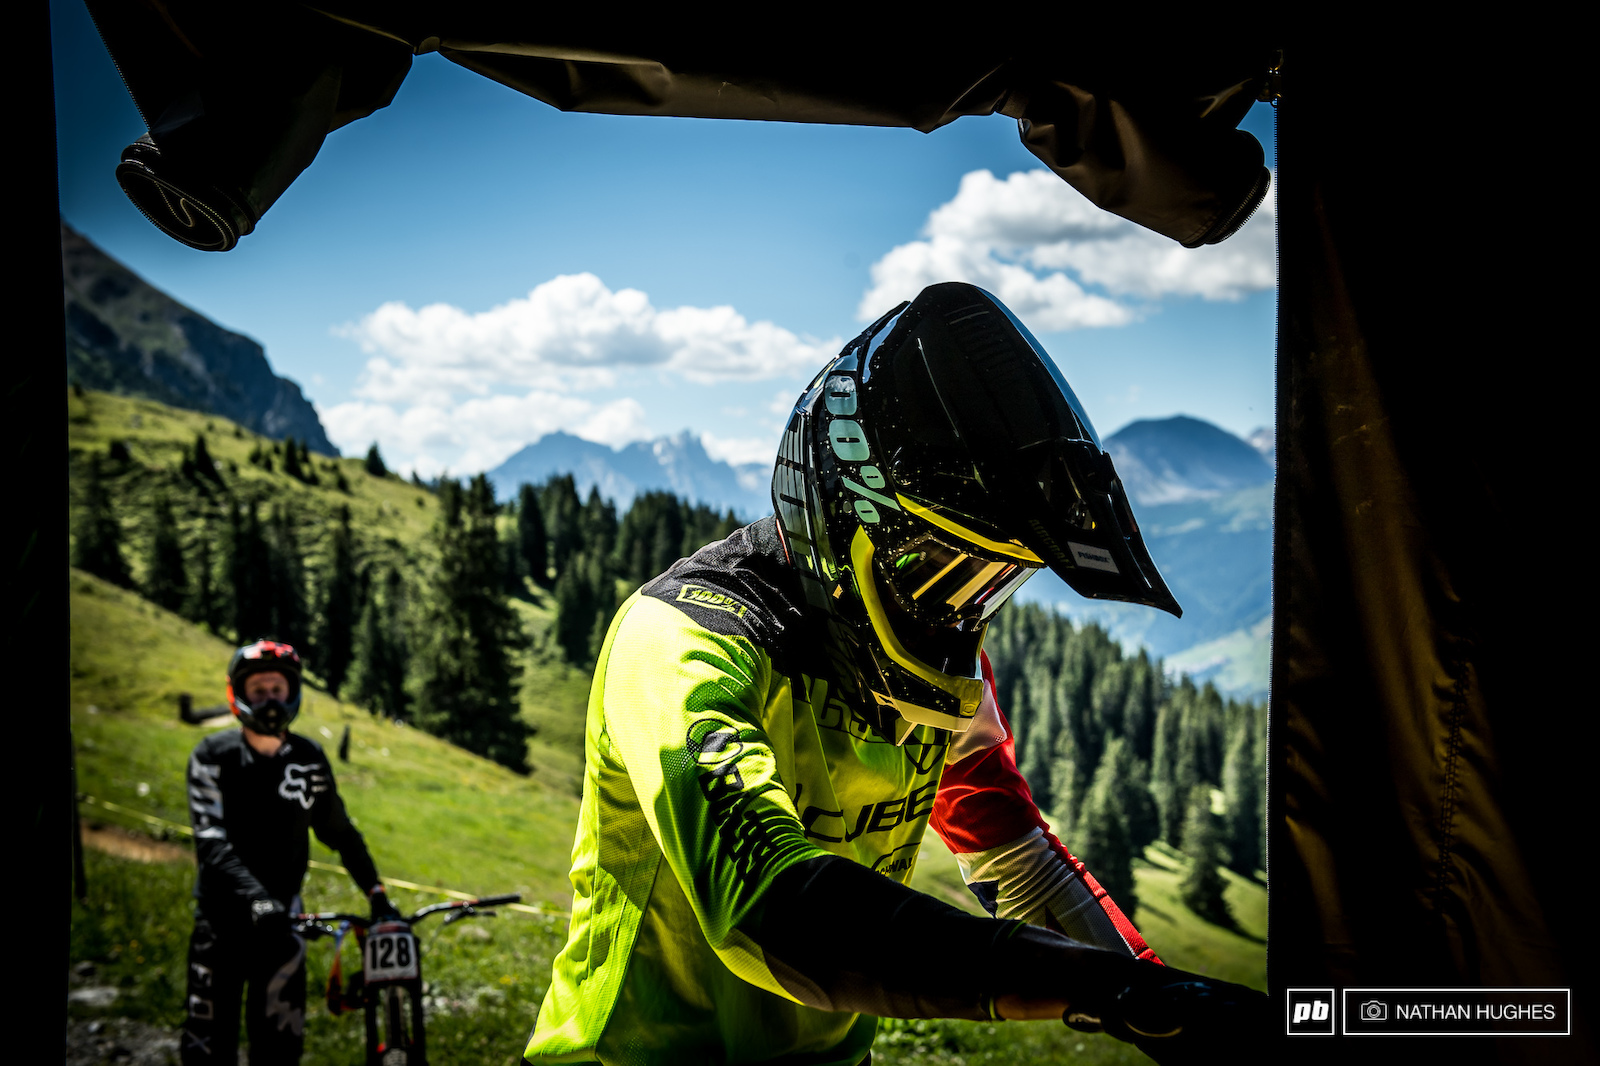 Greg Williamson arrives at work for the day. He is a professional downhill mountain biker.